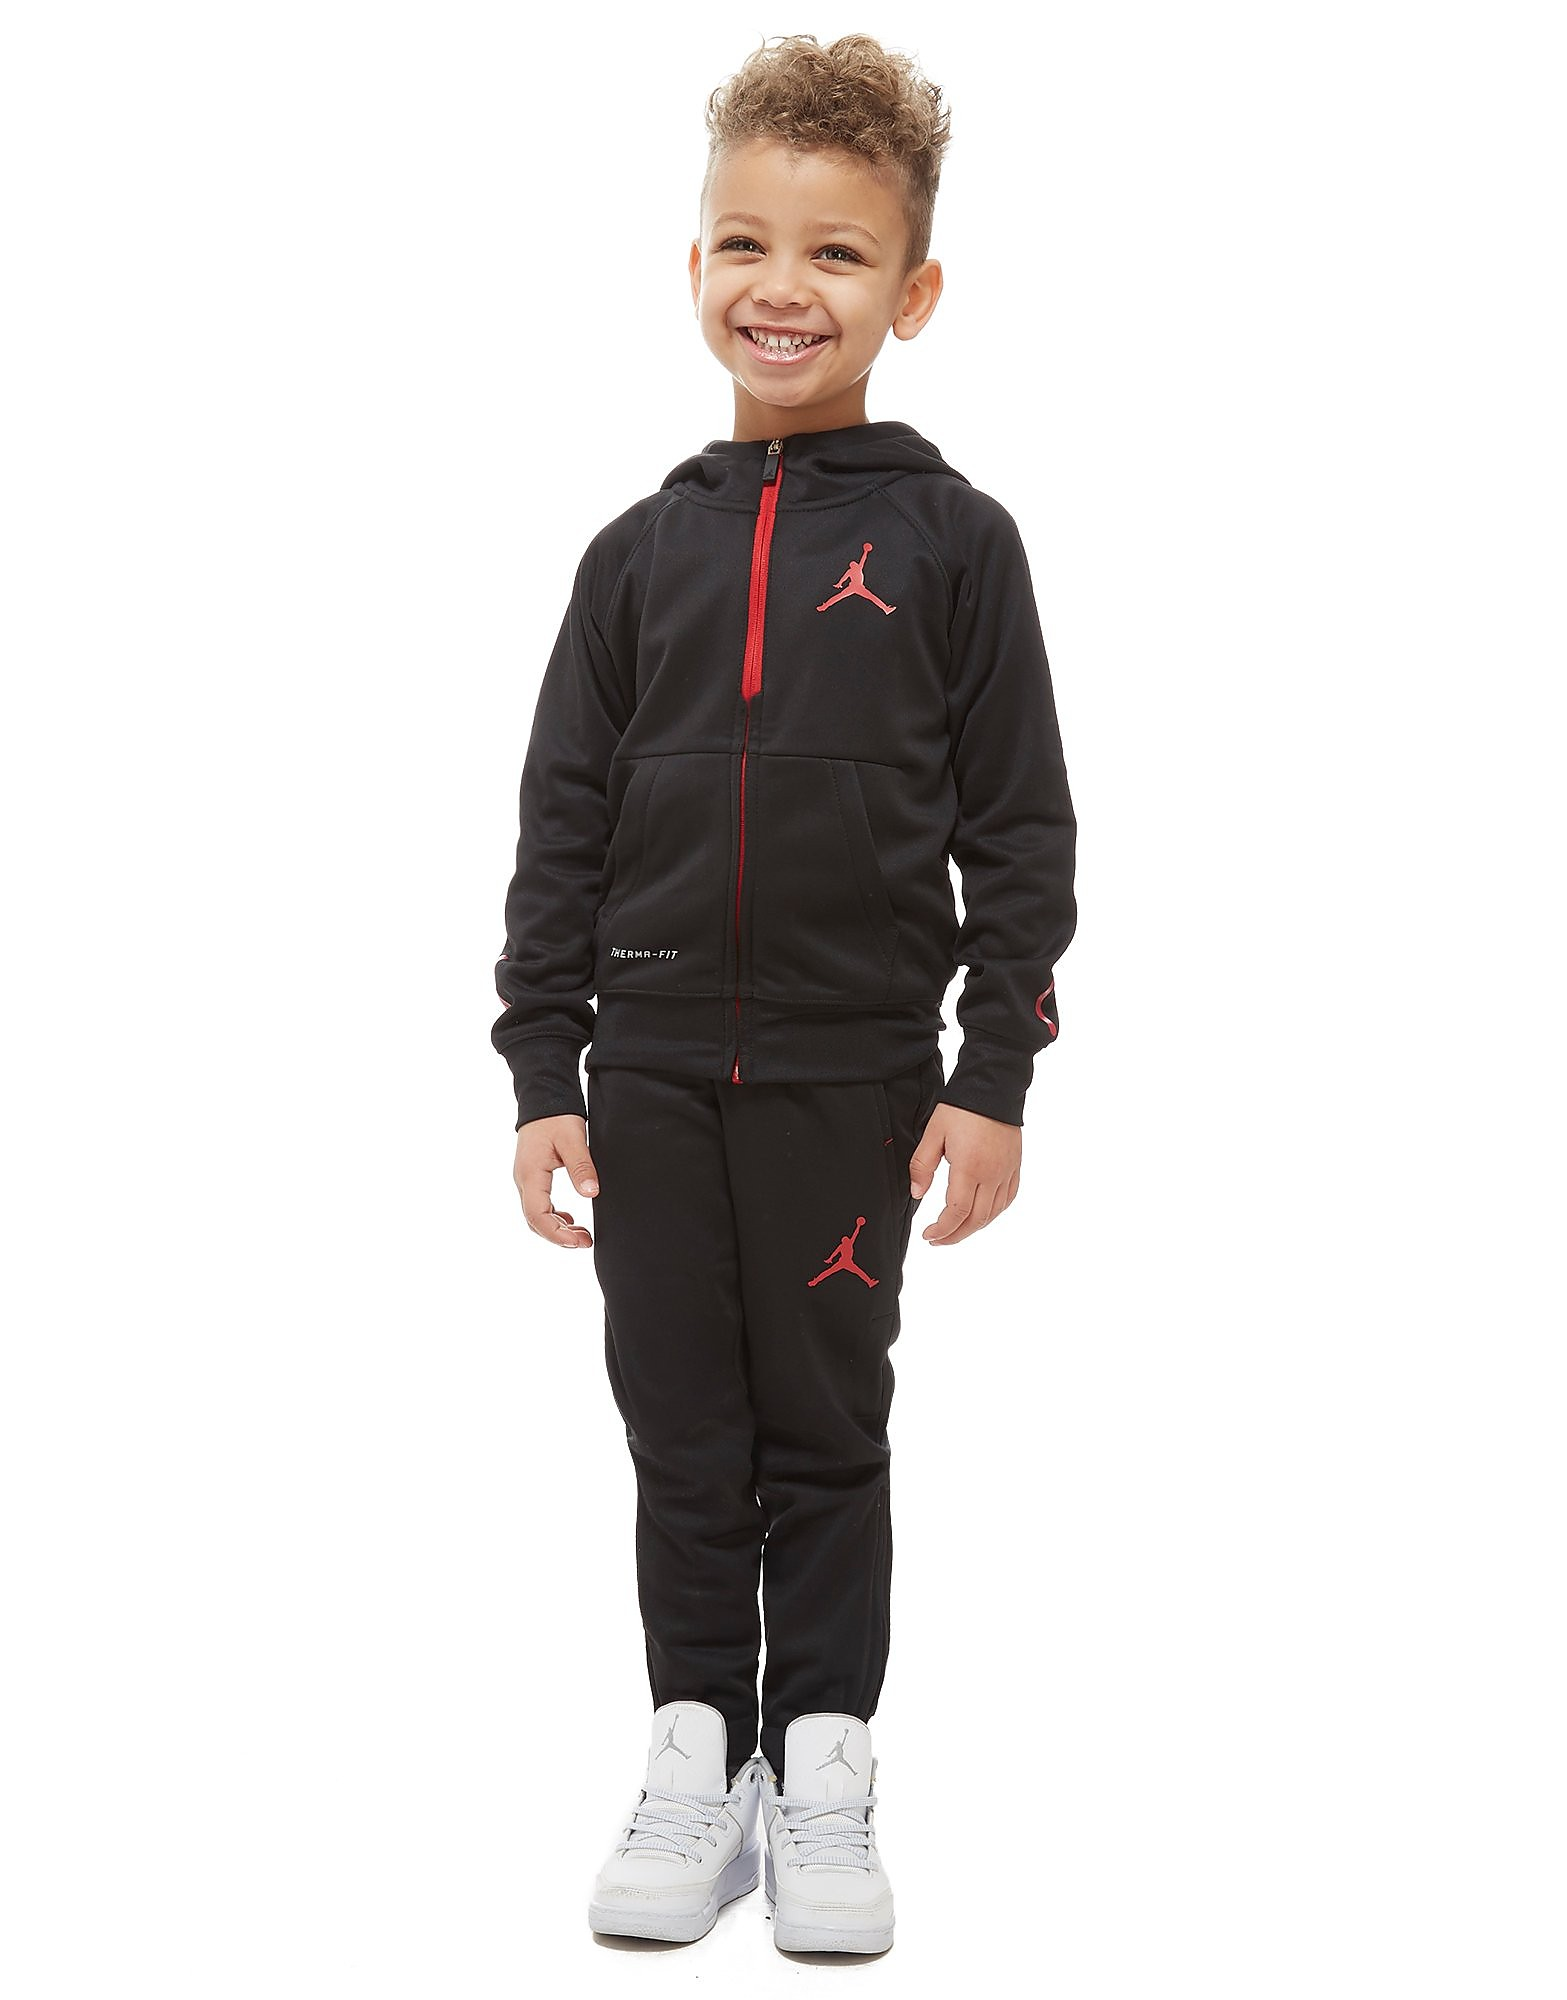 Jordan 23 Alpha Zip Tracksuit Children